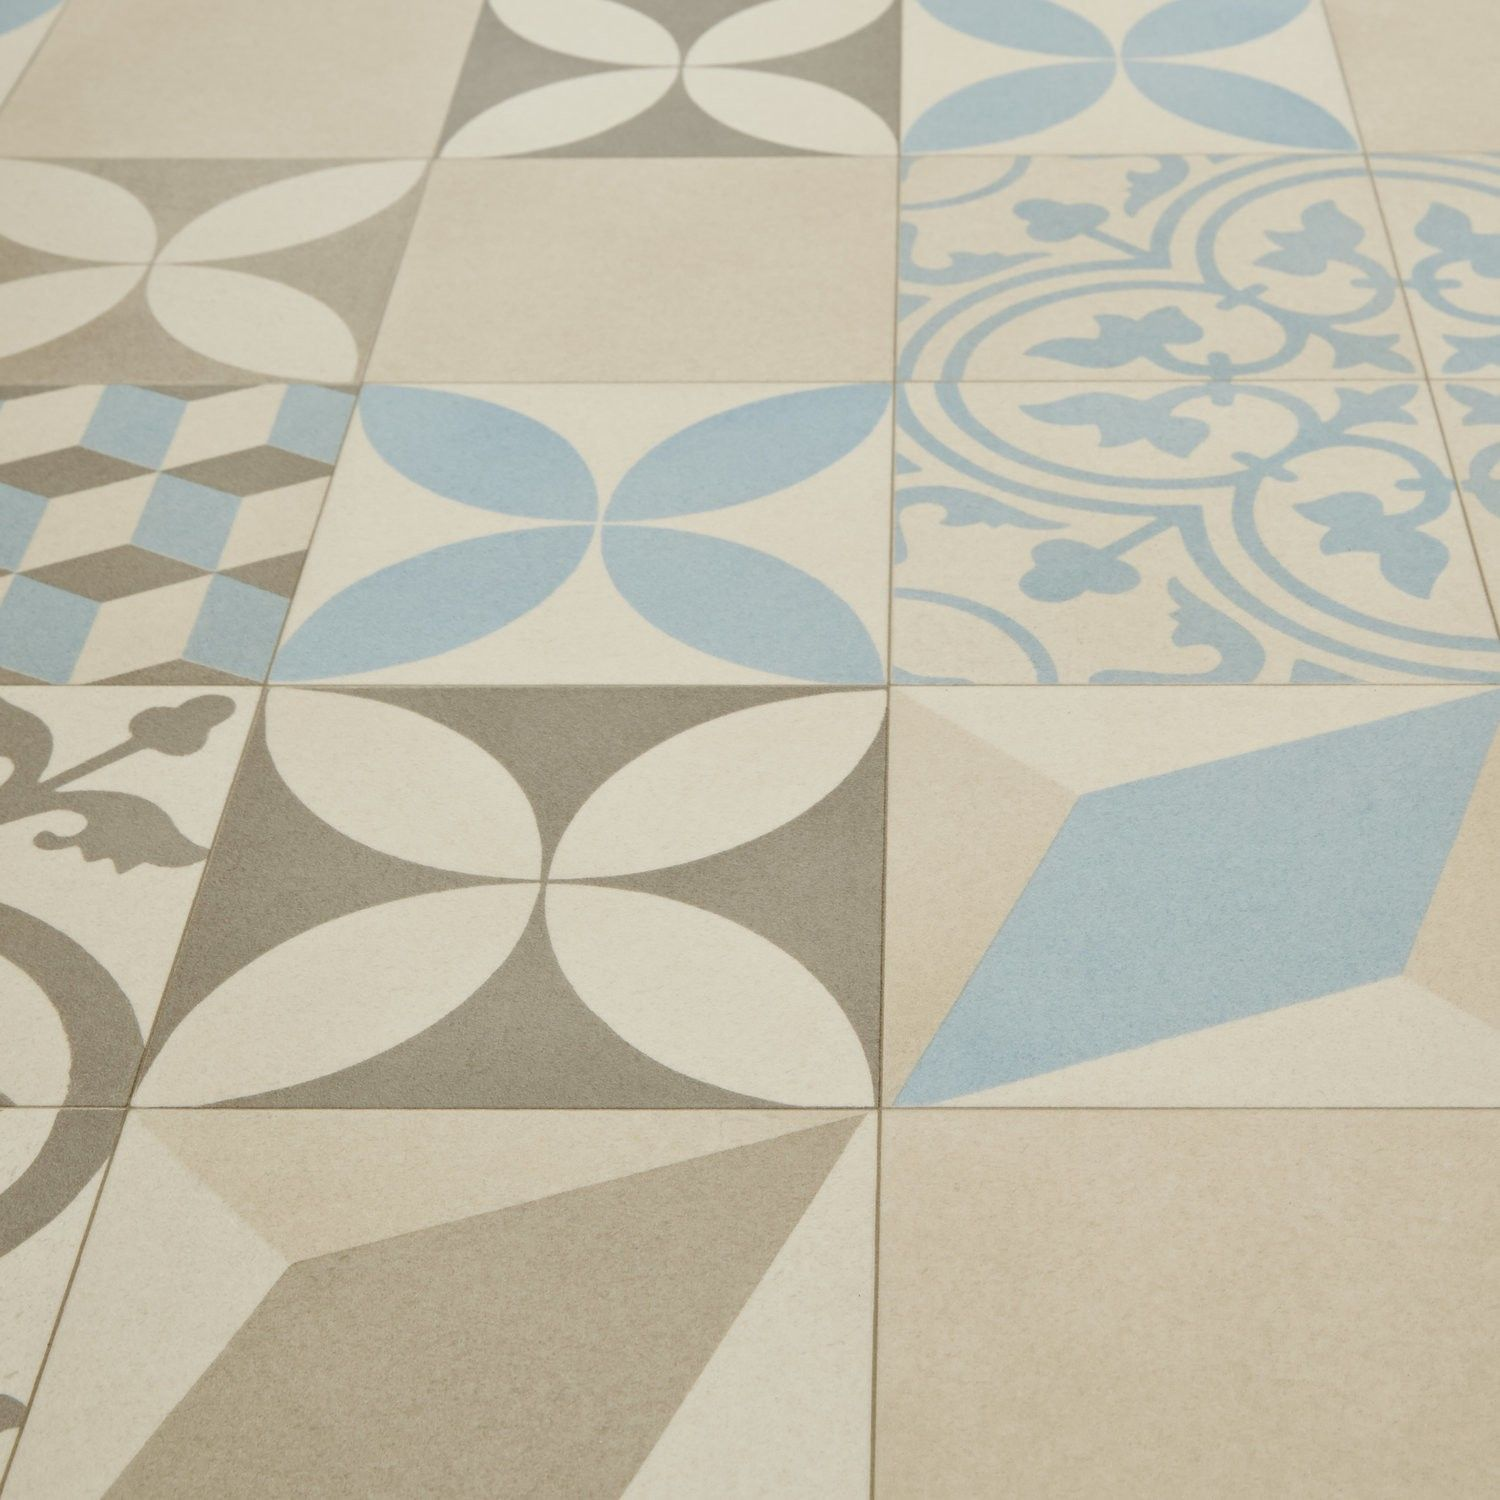 Kitchen Floor Vinyl Tiles Luxury Vinyl Tile Sheet Flooring Unique Decorative Design And